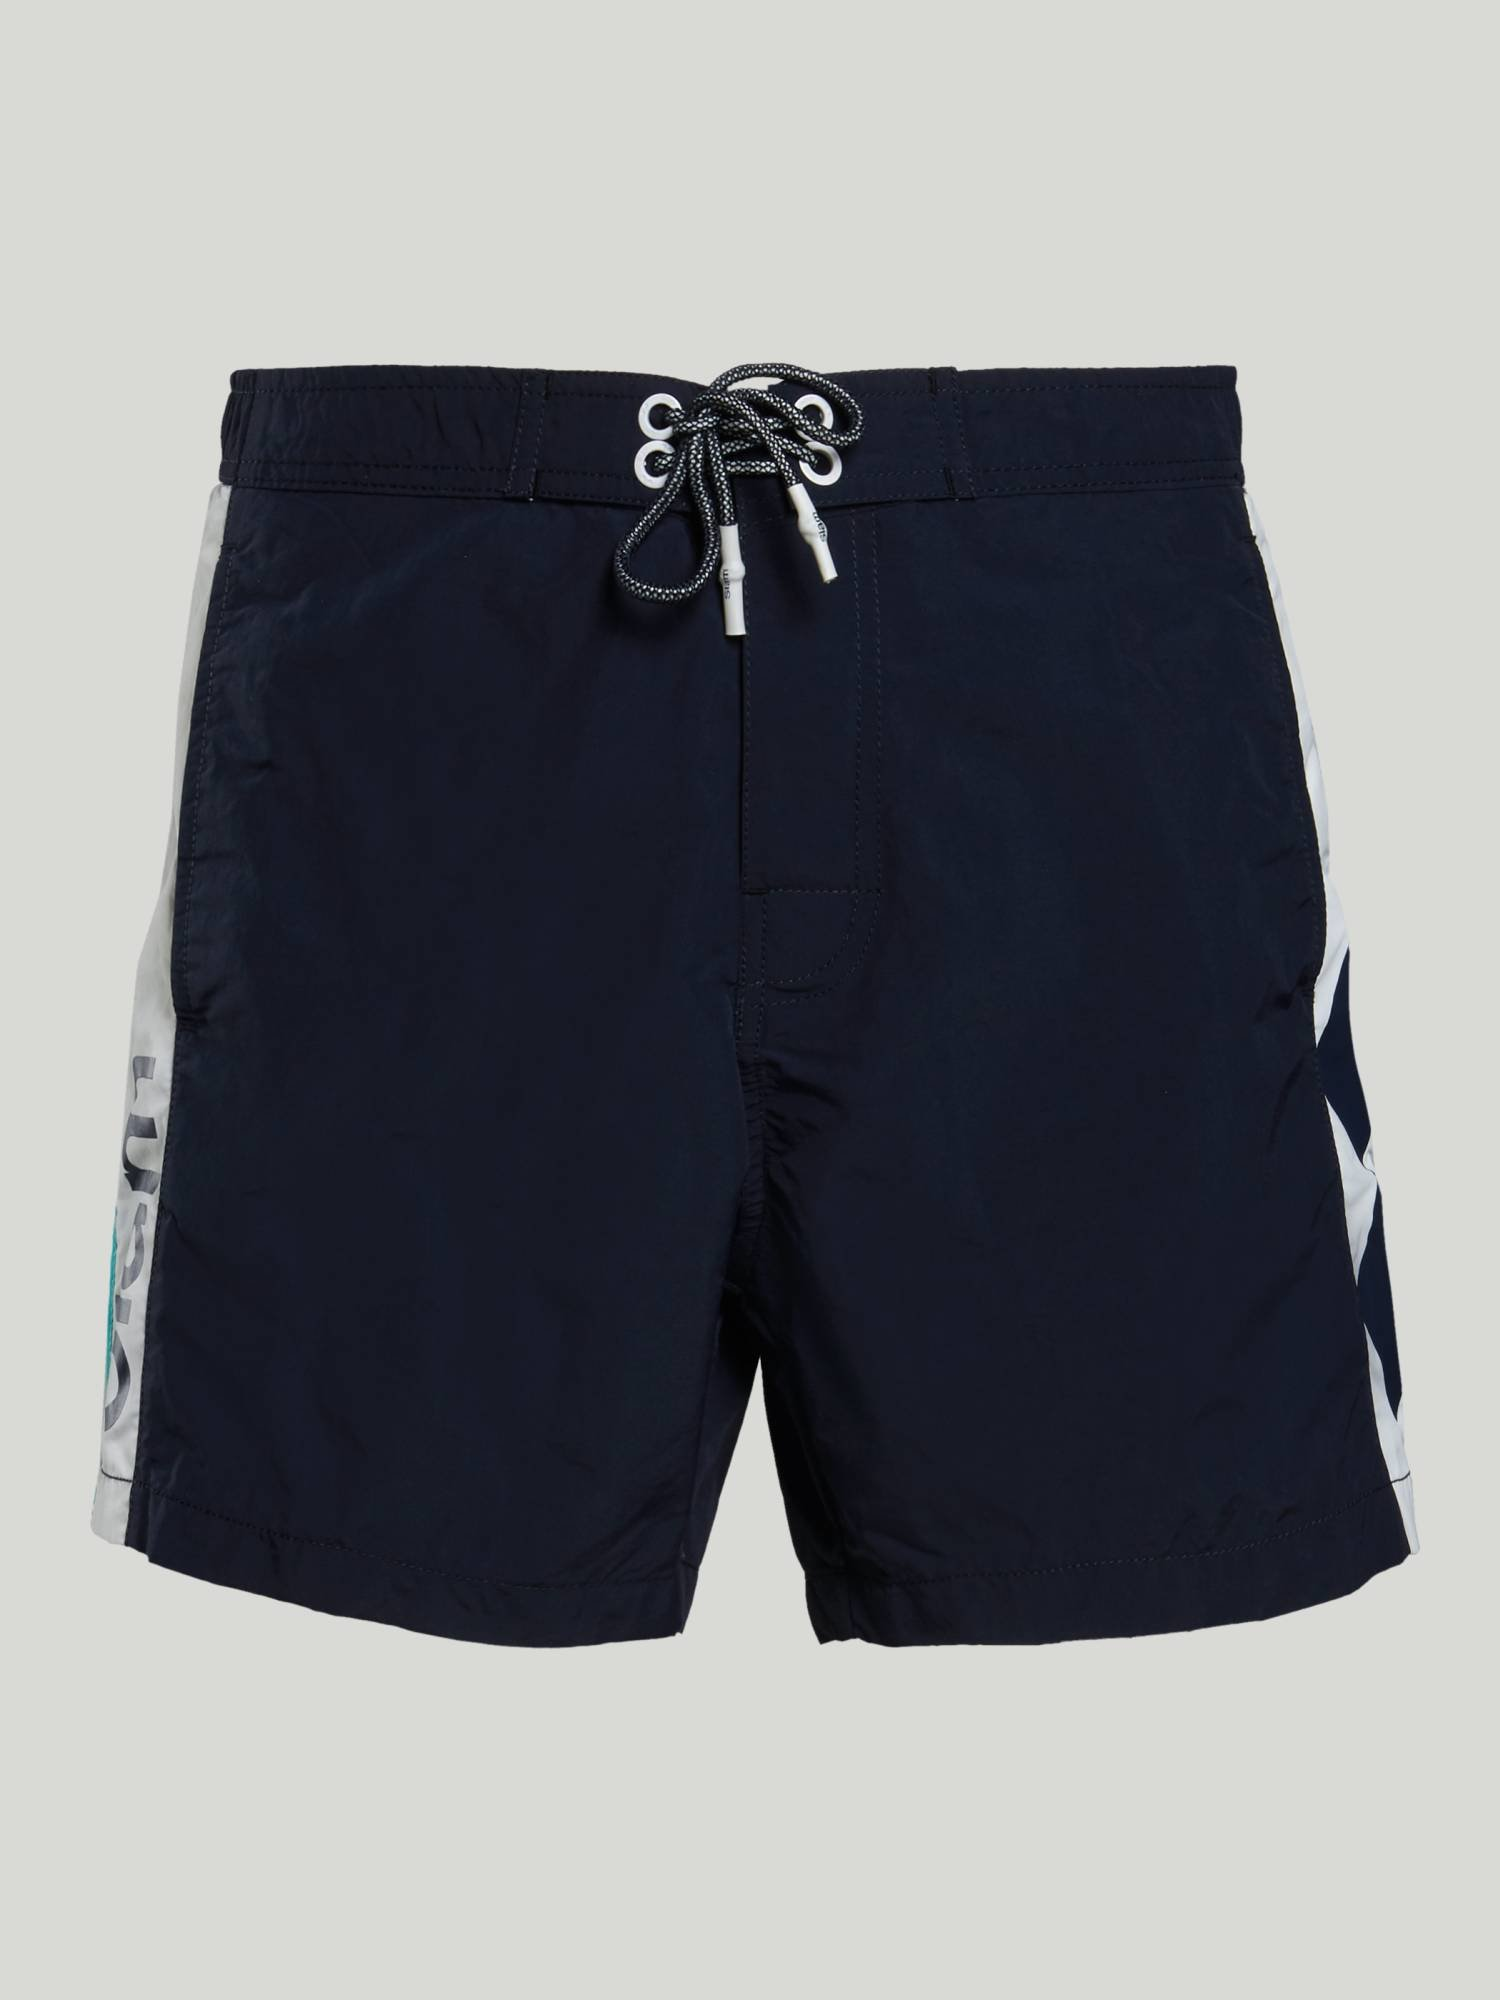 SWIMSUIT A60 - Navy